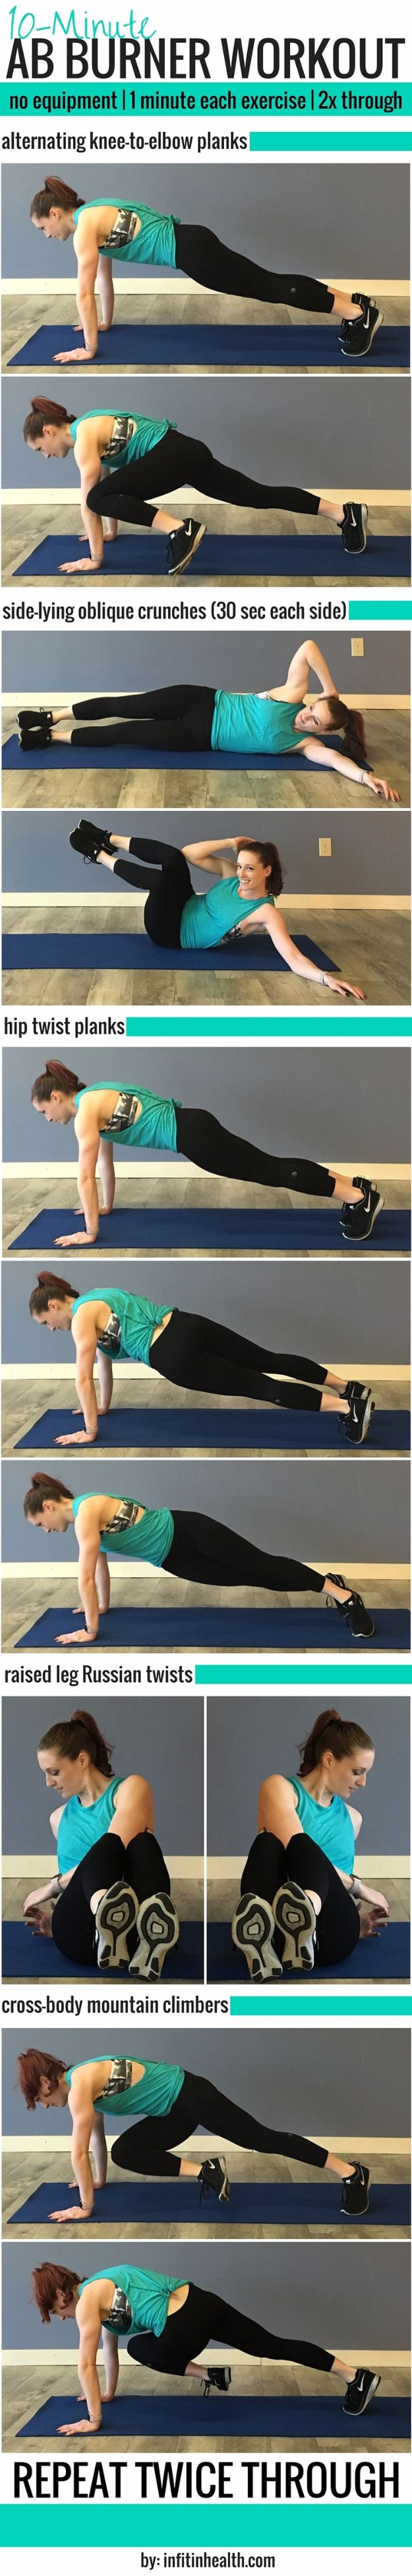 Best Ab Strength Exercises You Can Do In The Car